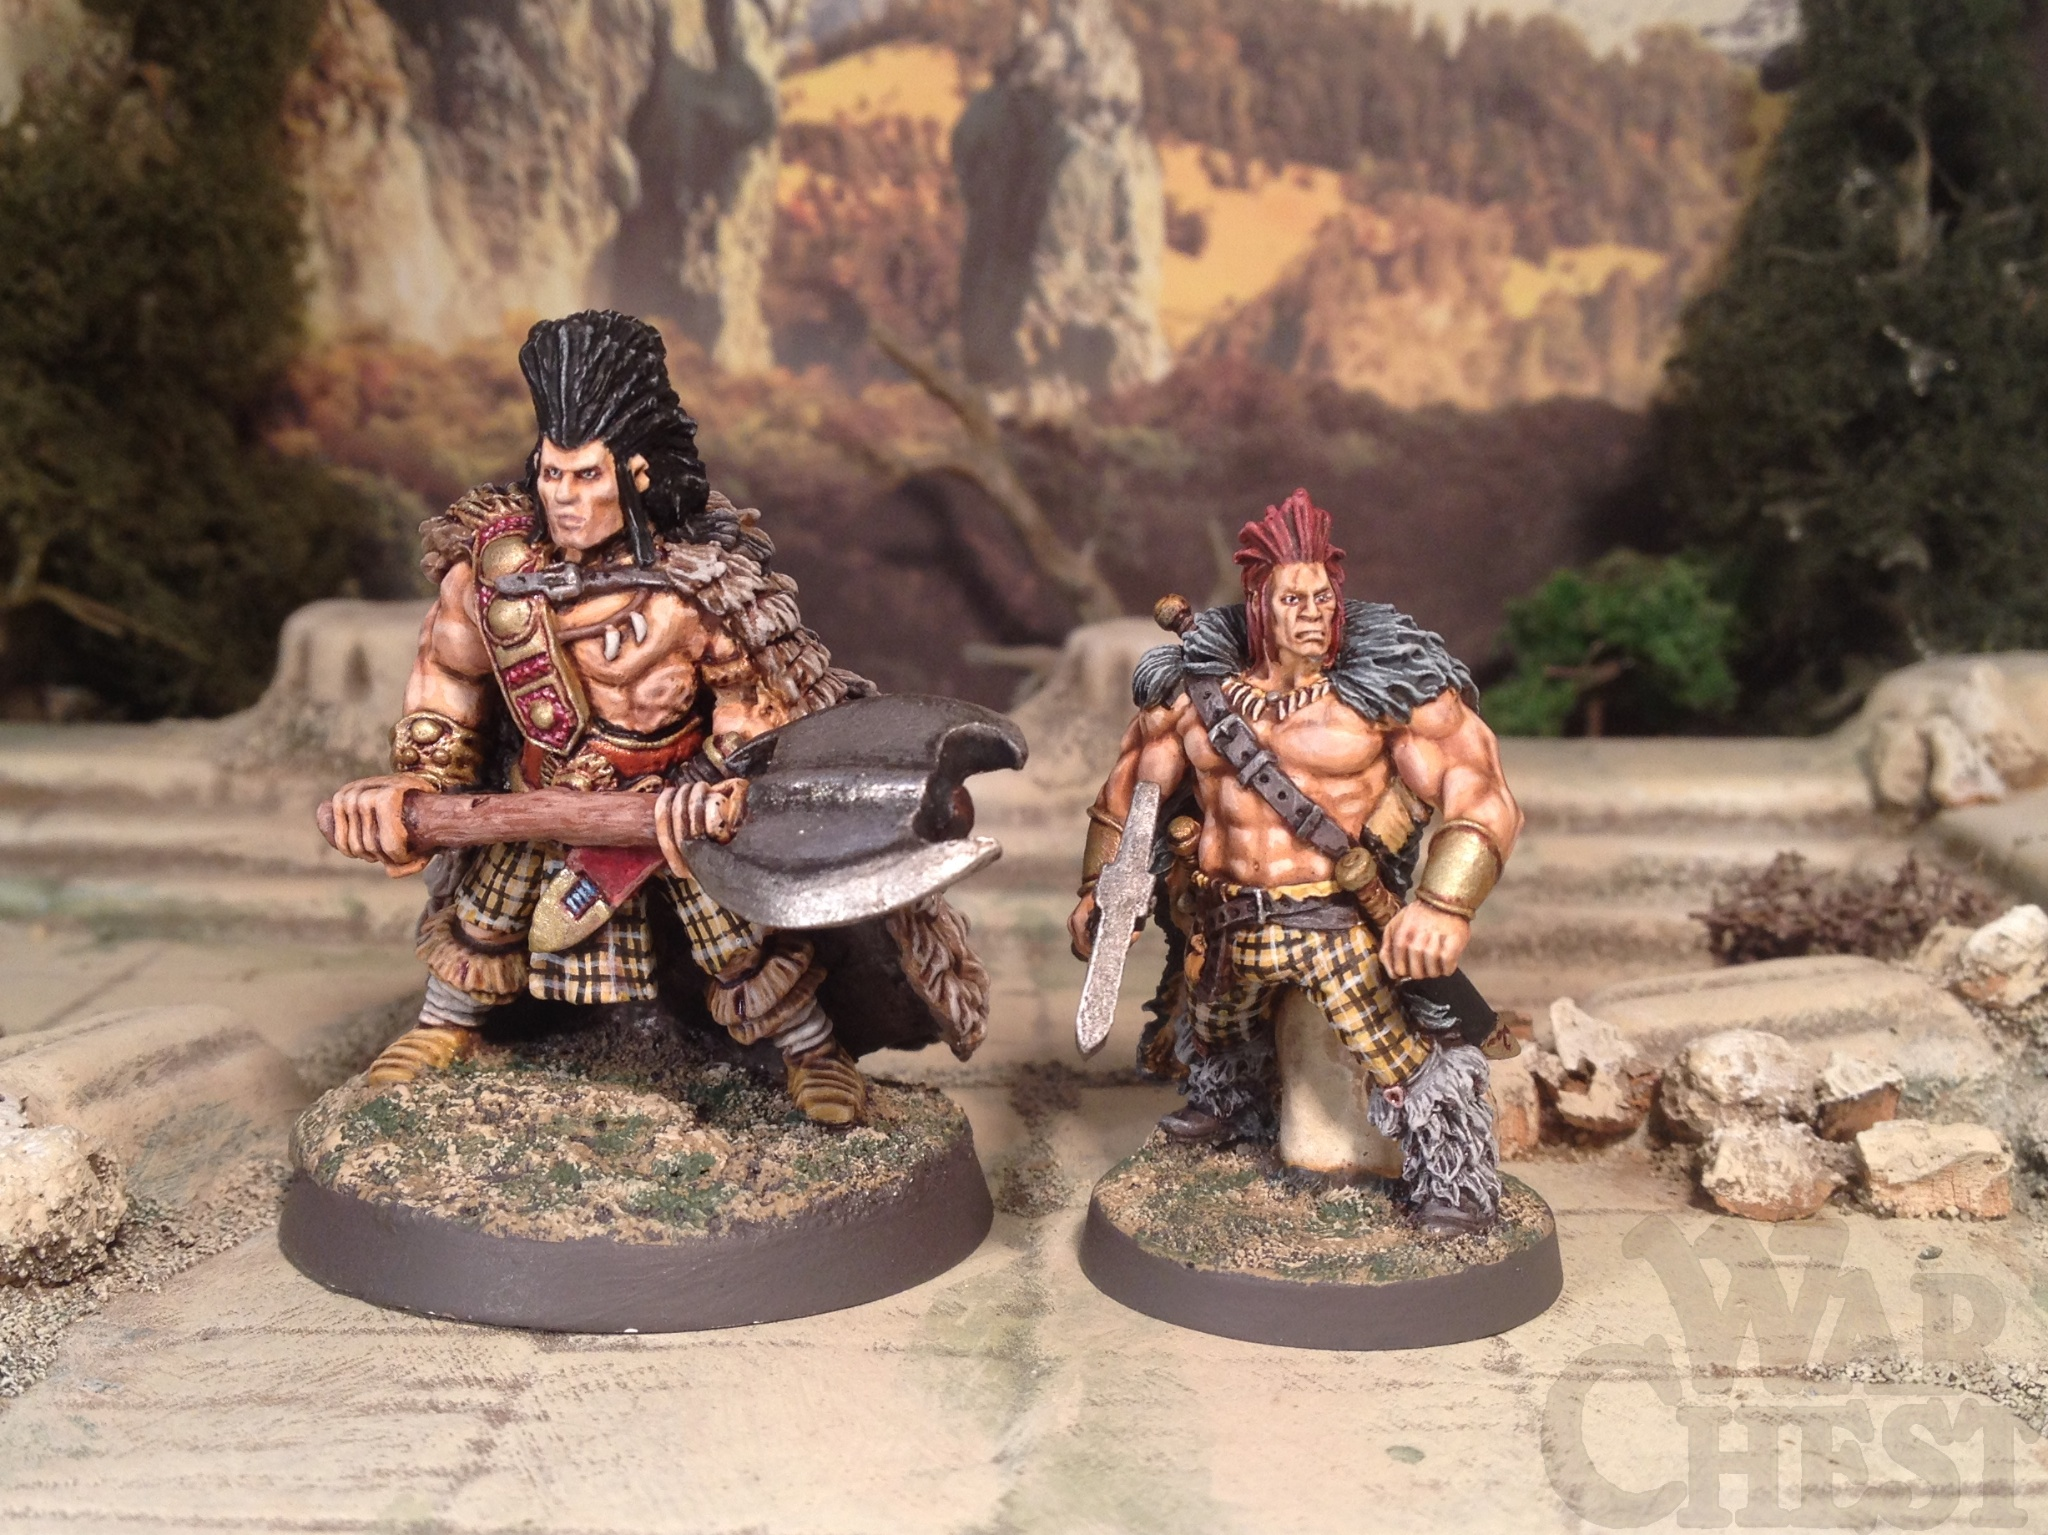 28mm Wargames Foundry Slaine Fantasy Barbarian 28mm Hasslefree Miniatures Slaine Fantasy Barbarian